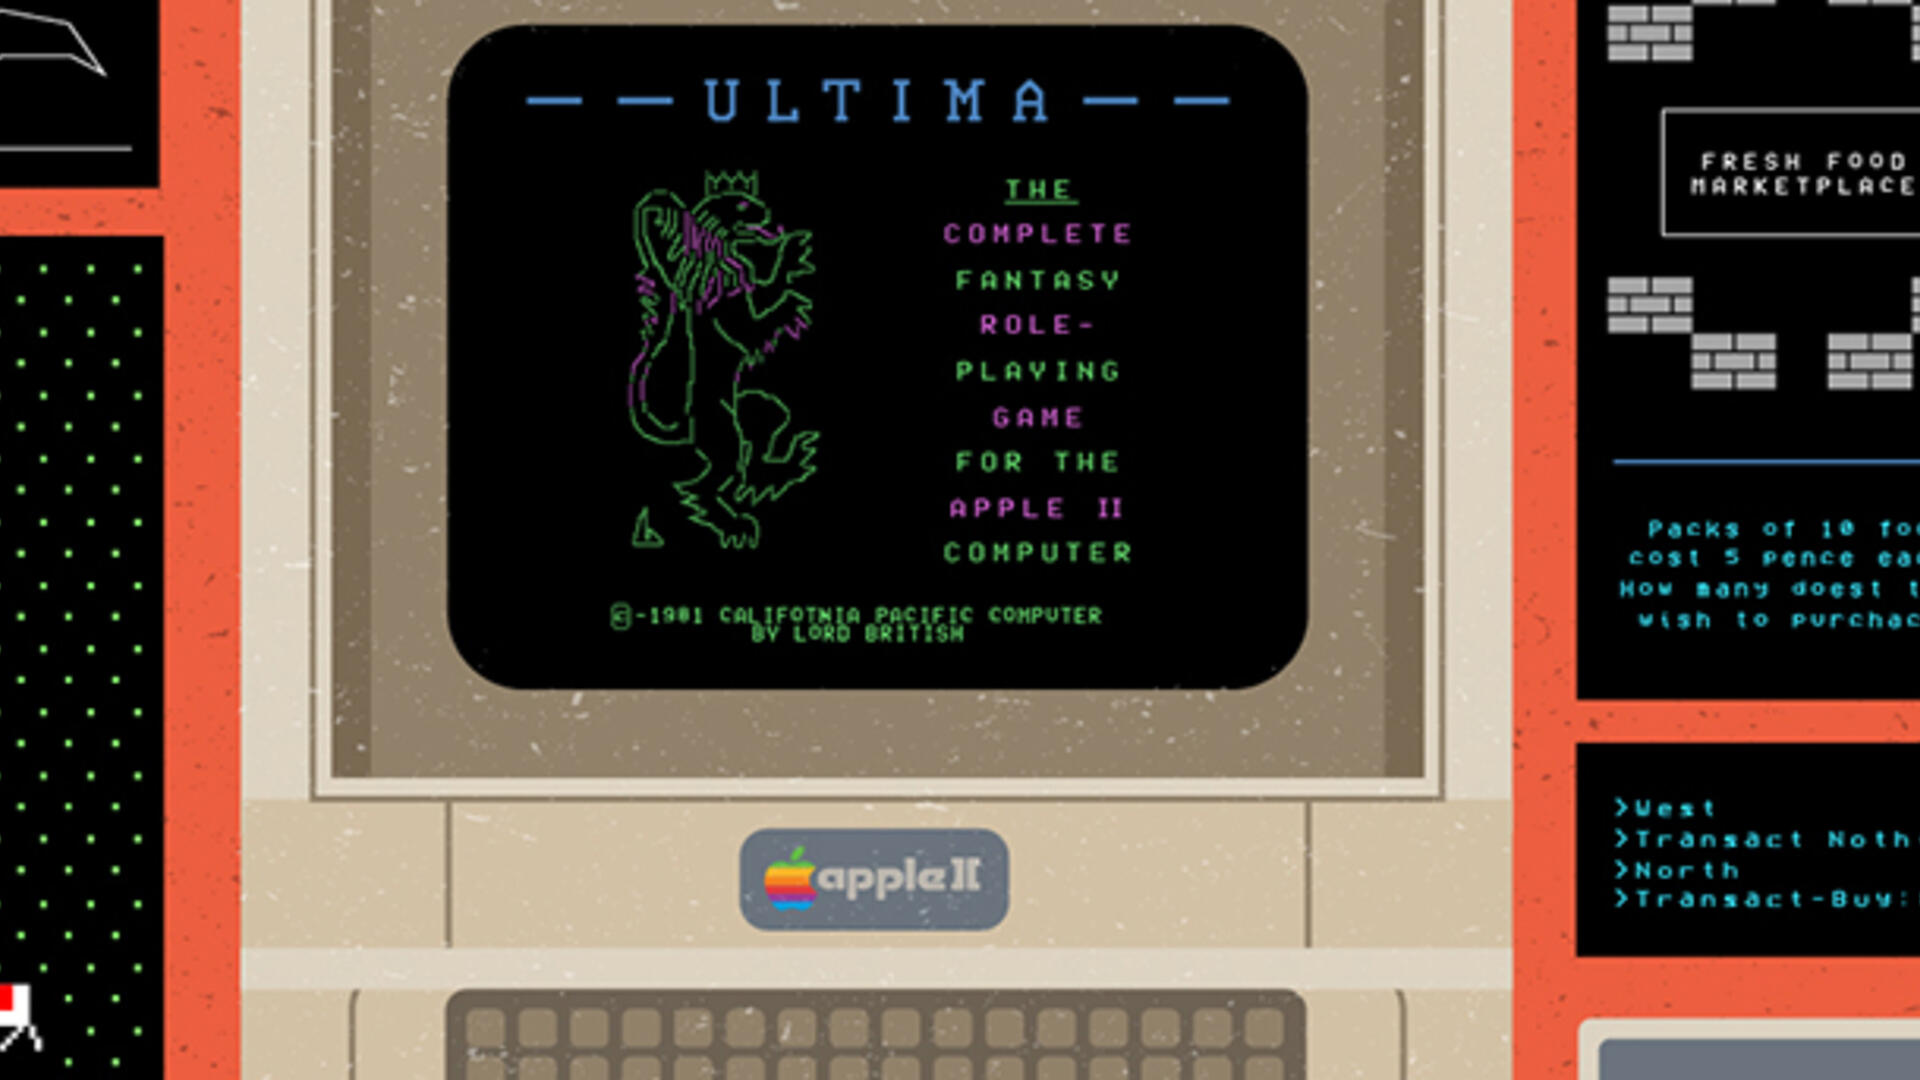 Exploring Ultima and Teletype RPGs, Plus #24 on Our Top 25 RPG Countdown